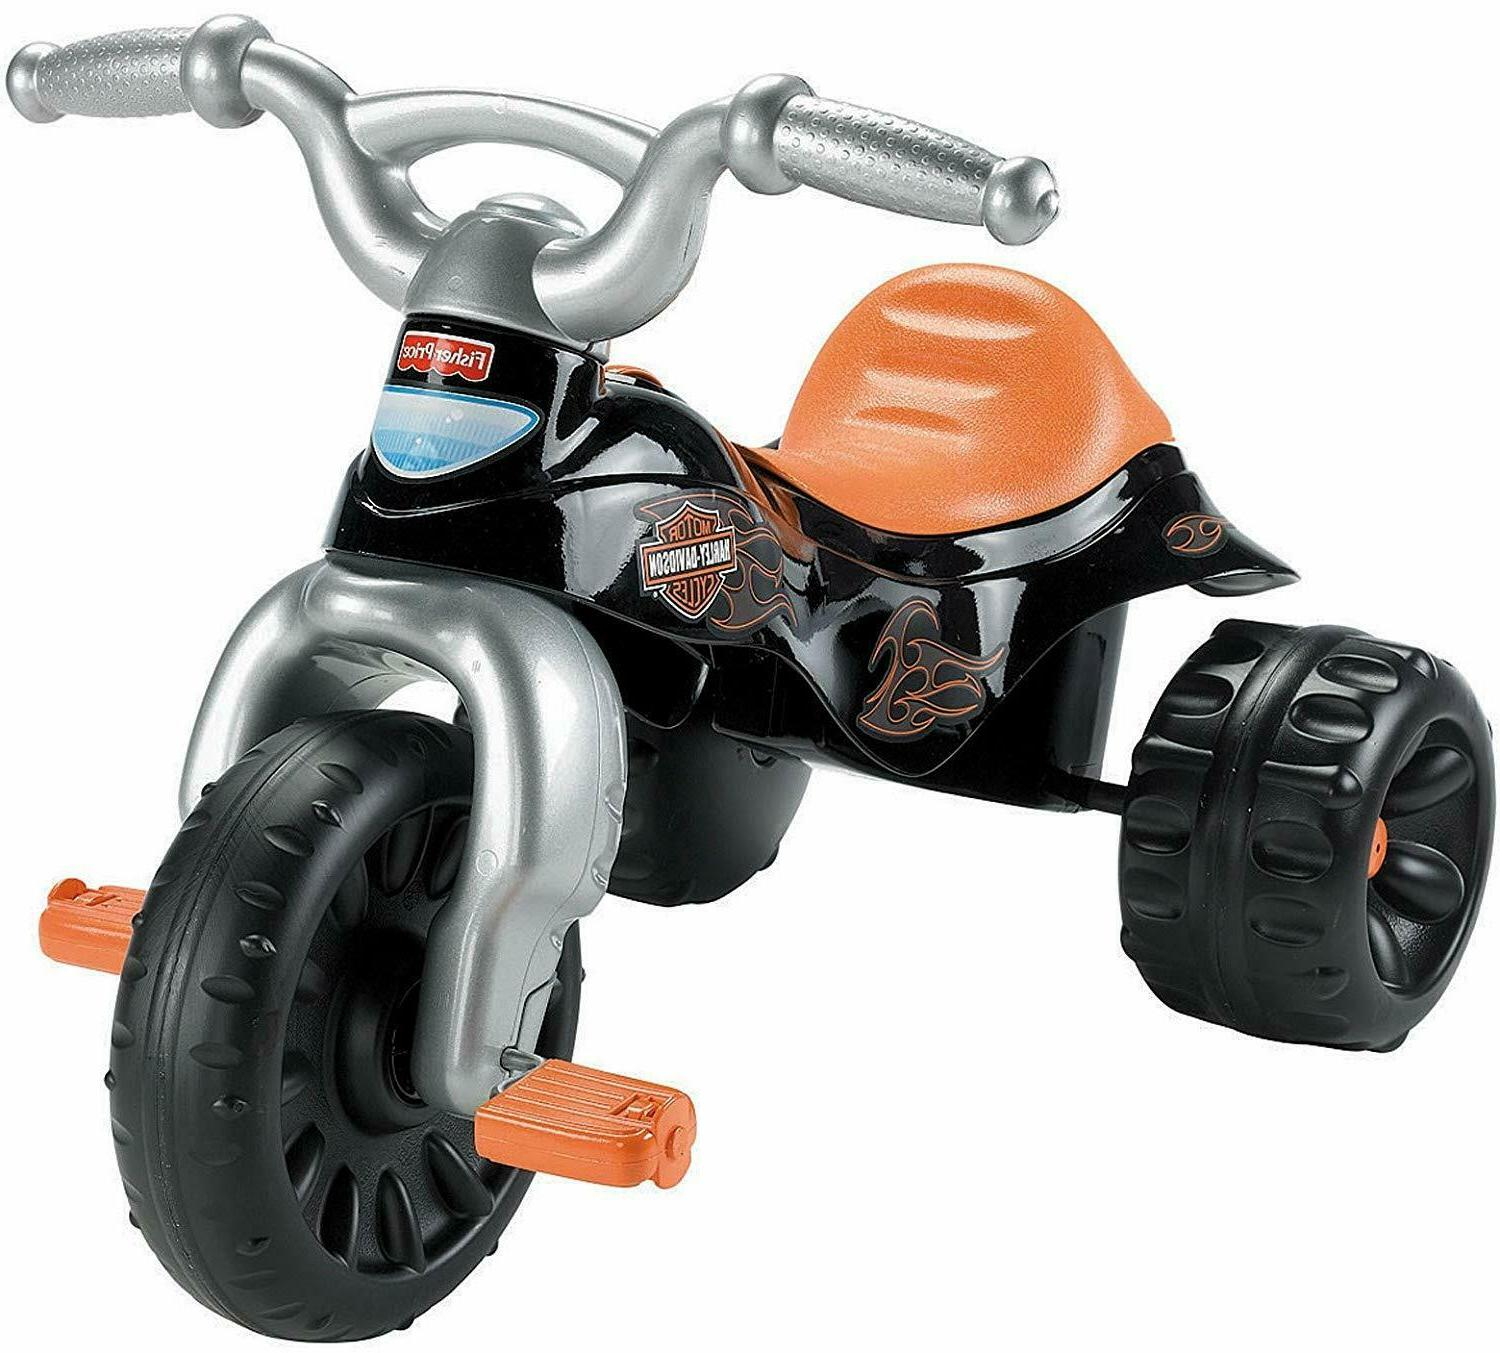 Tricycle Boys Bike Toys For Outdoors Kids Ride On Motorcycle